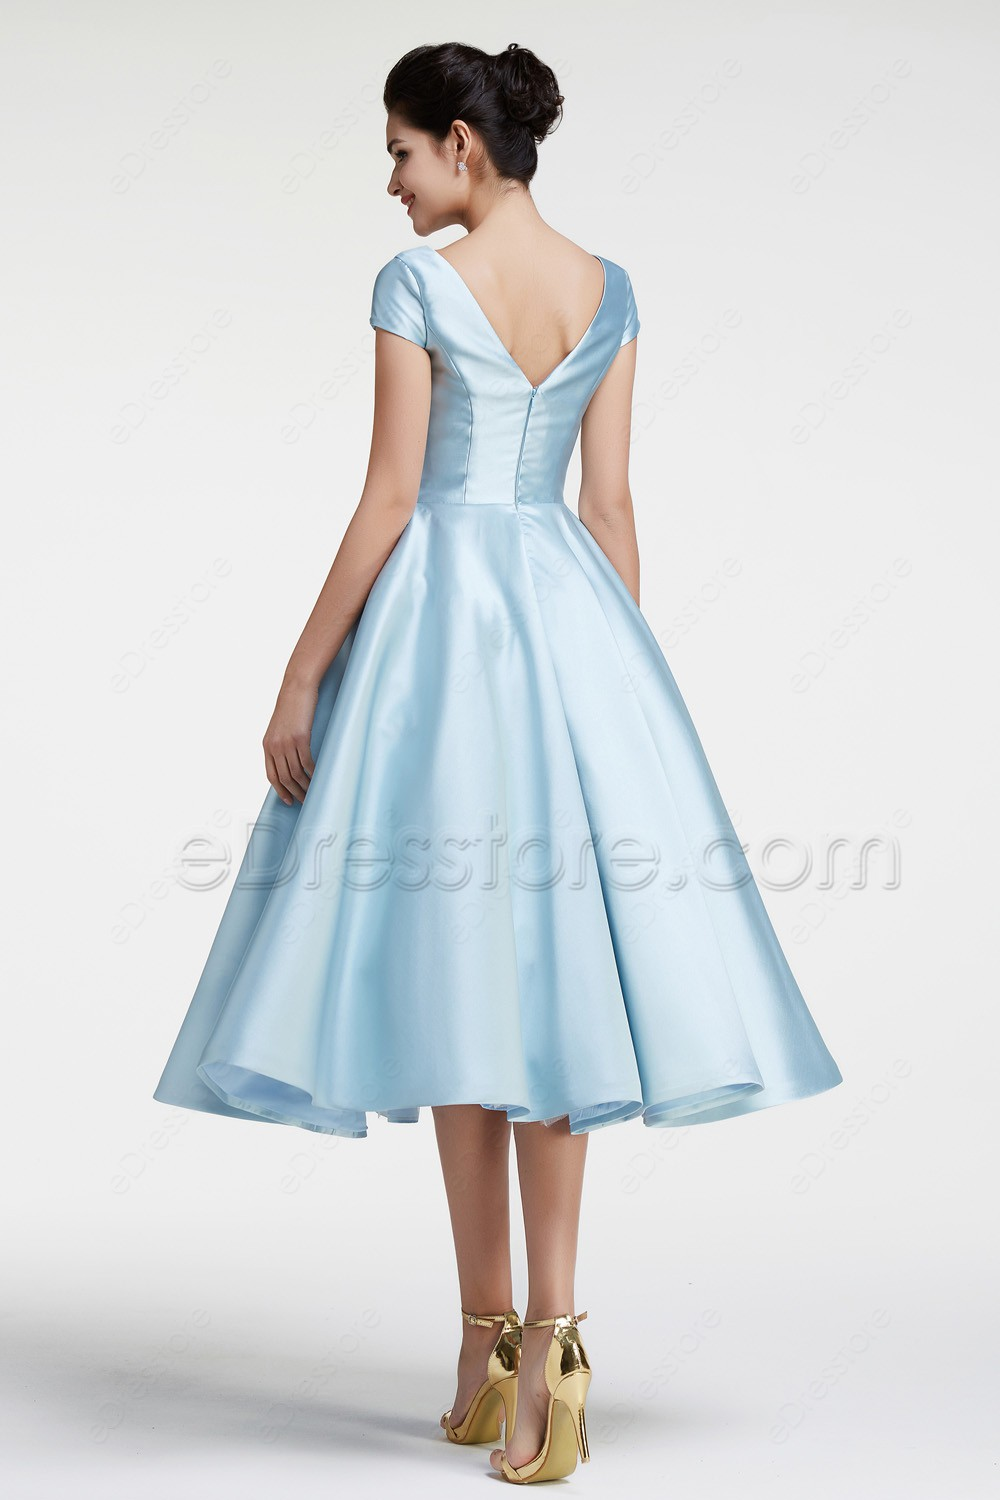 Modest Ball Gown Ice Blue Vintage Prom Dress with Sleeves